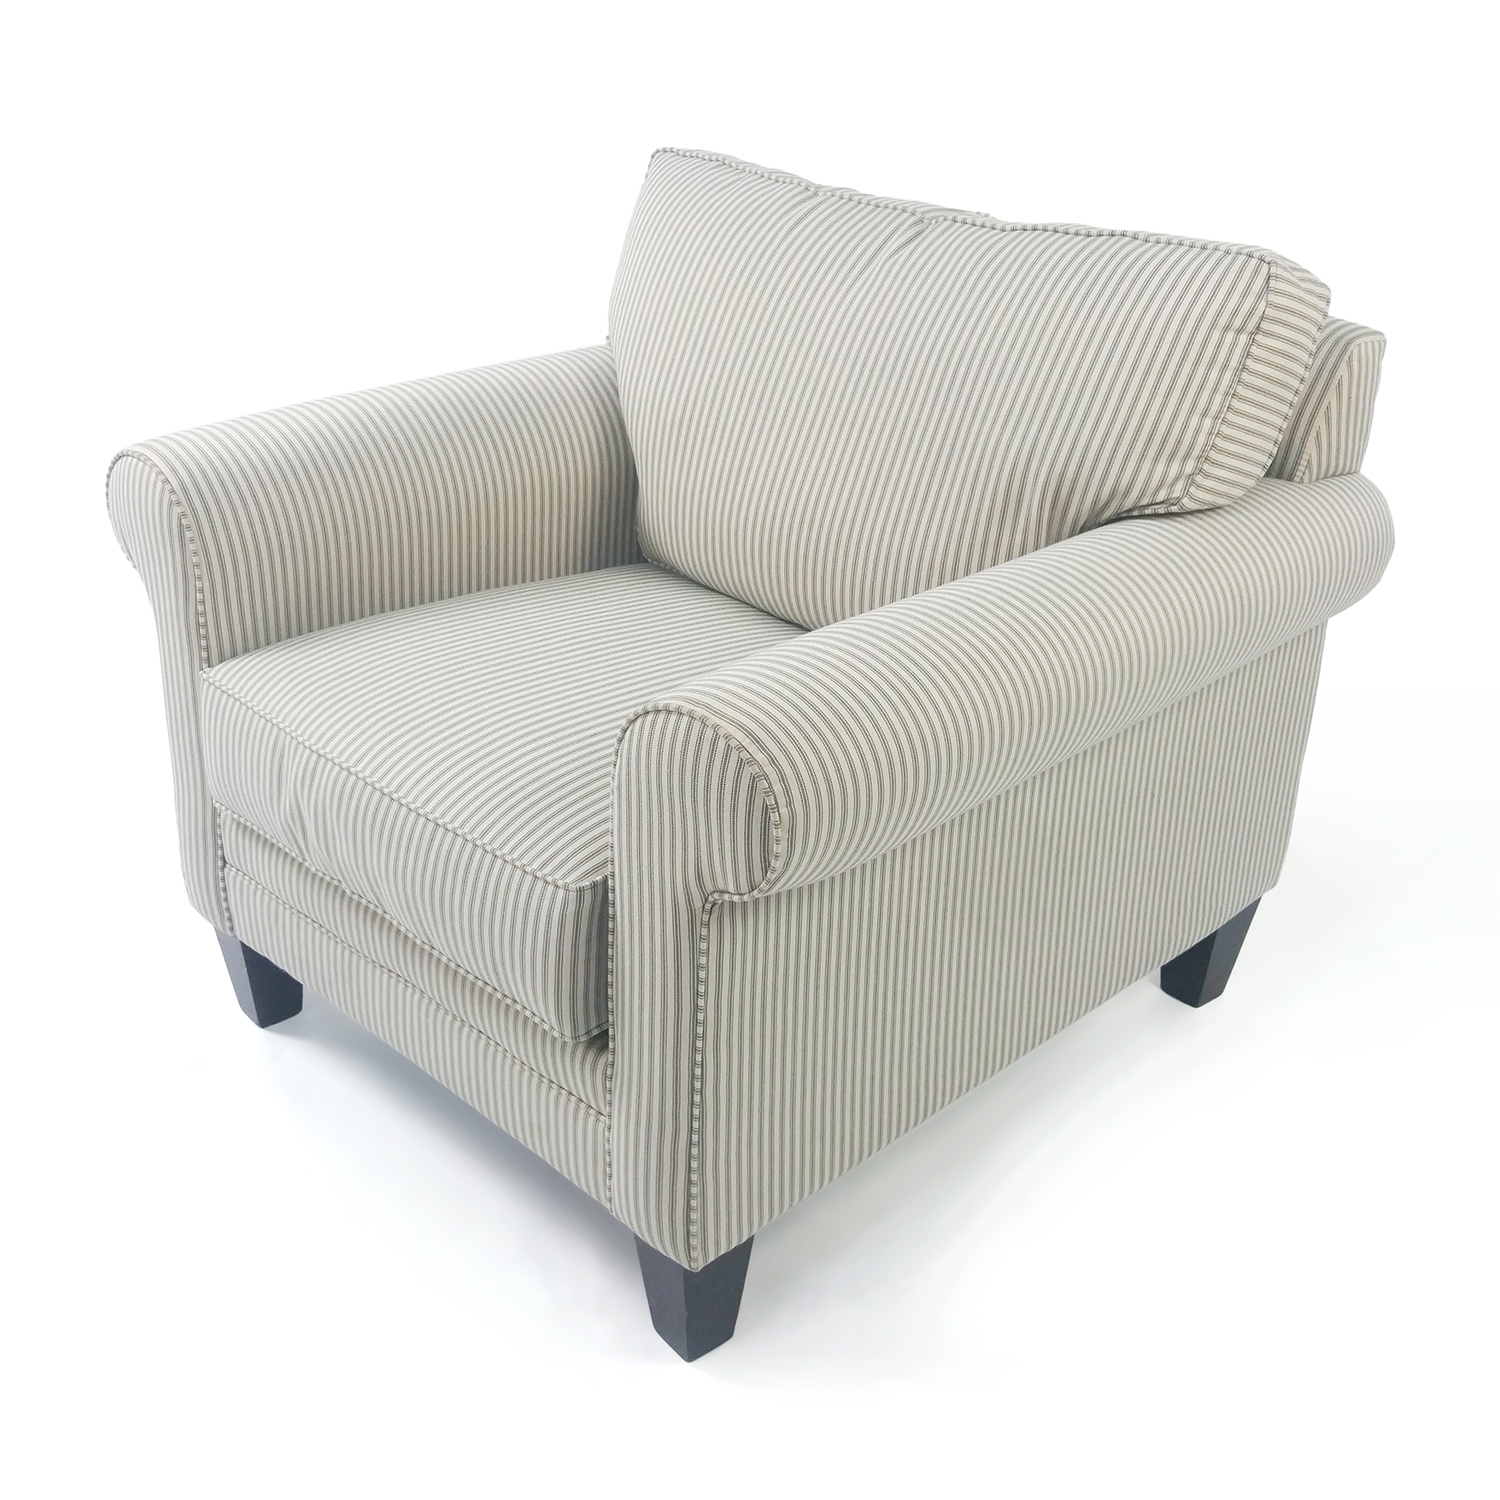 50% OFF Raymour and Flanigan Striped Cream Armchair Chairs